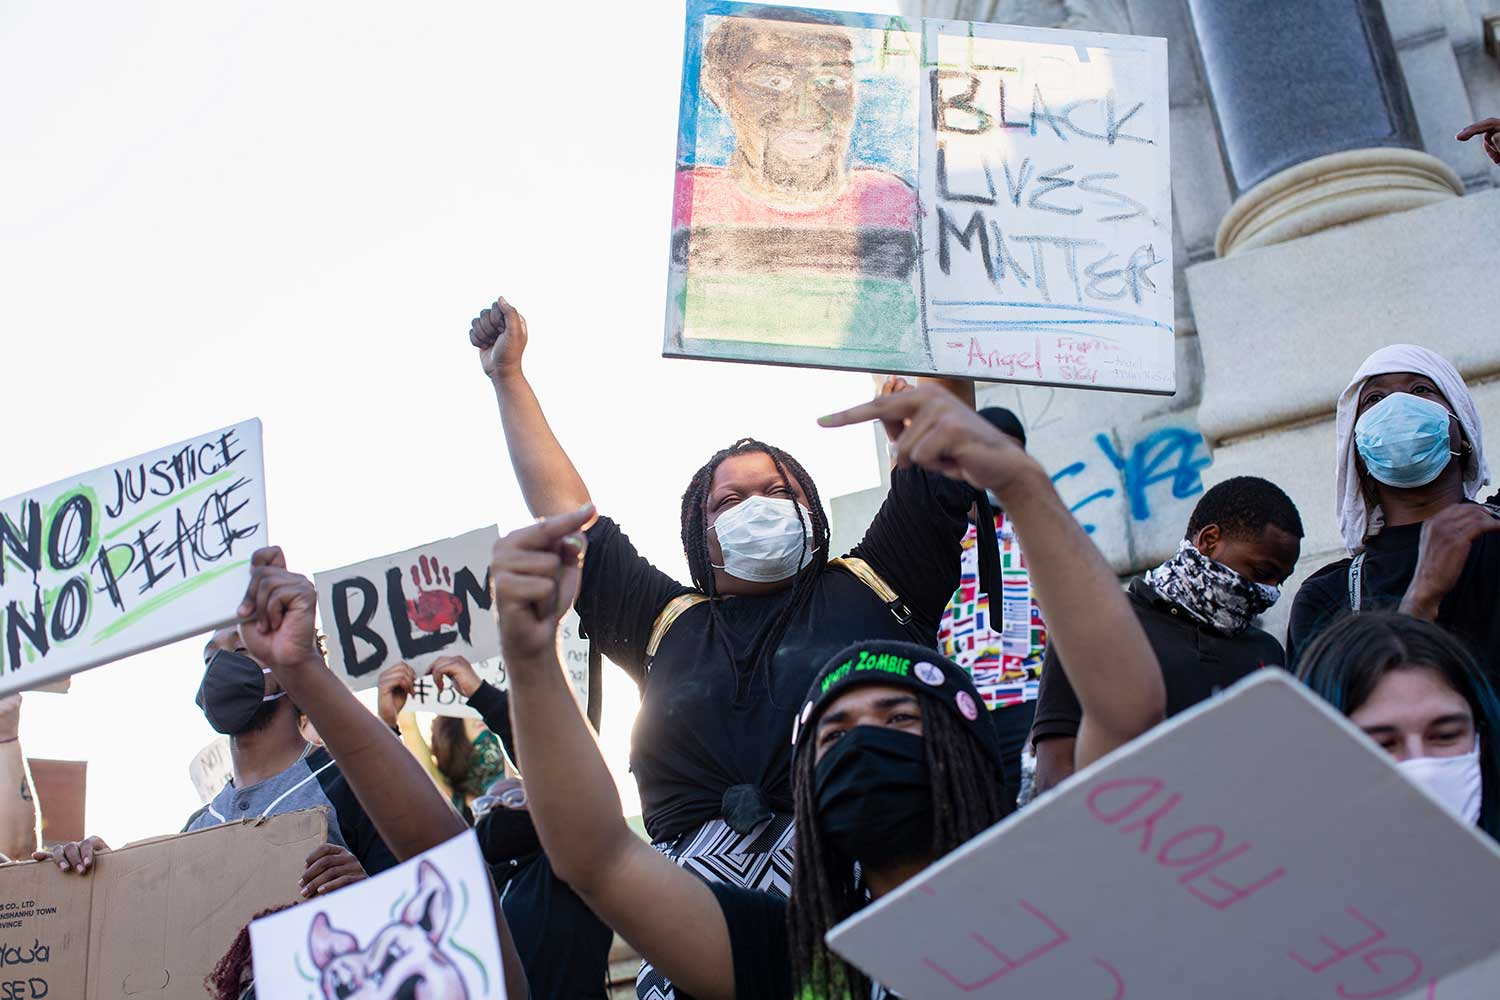 Protesters wearing protective face masks raise their fists and carry hand-drawn Black Lives Matter signs.